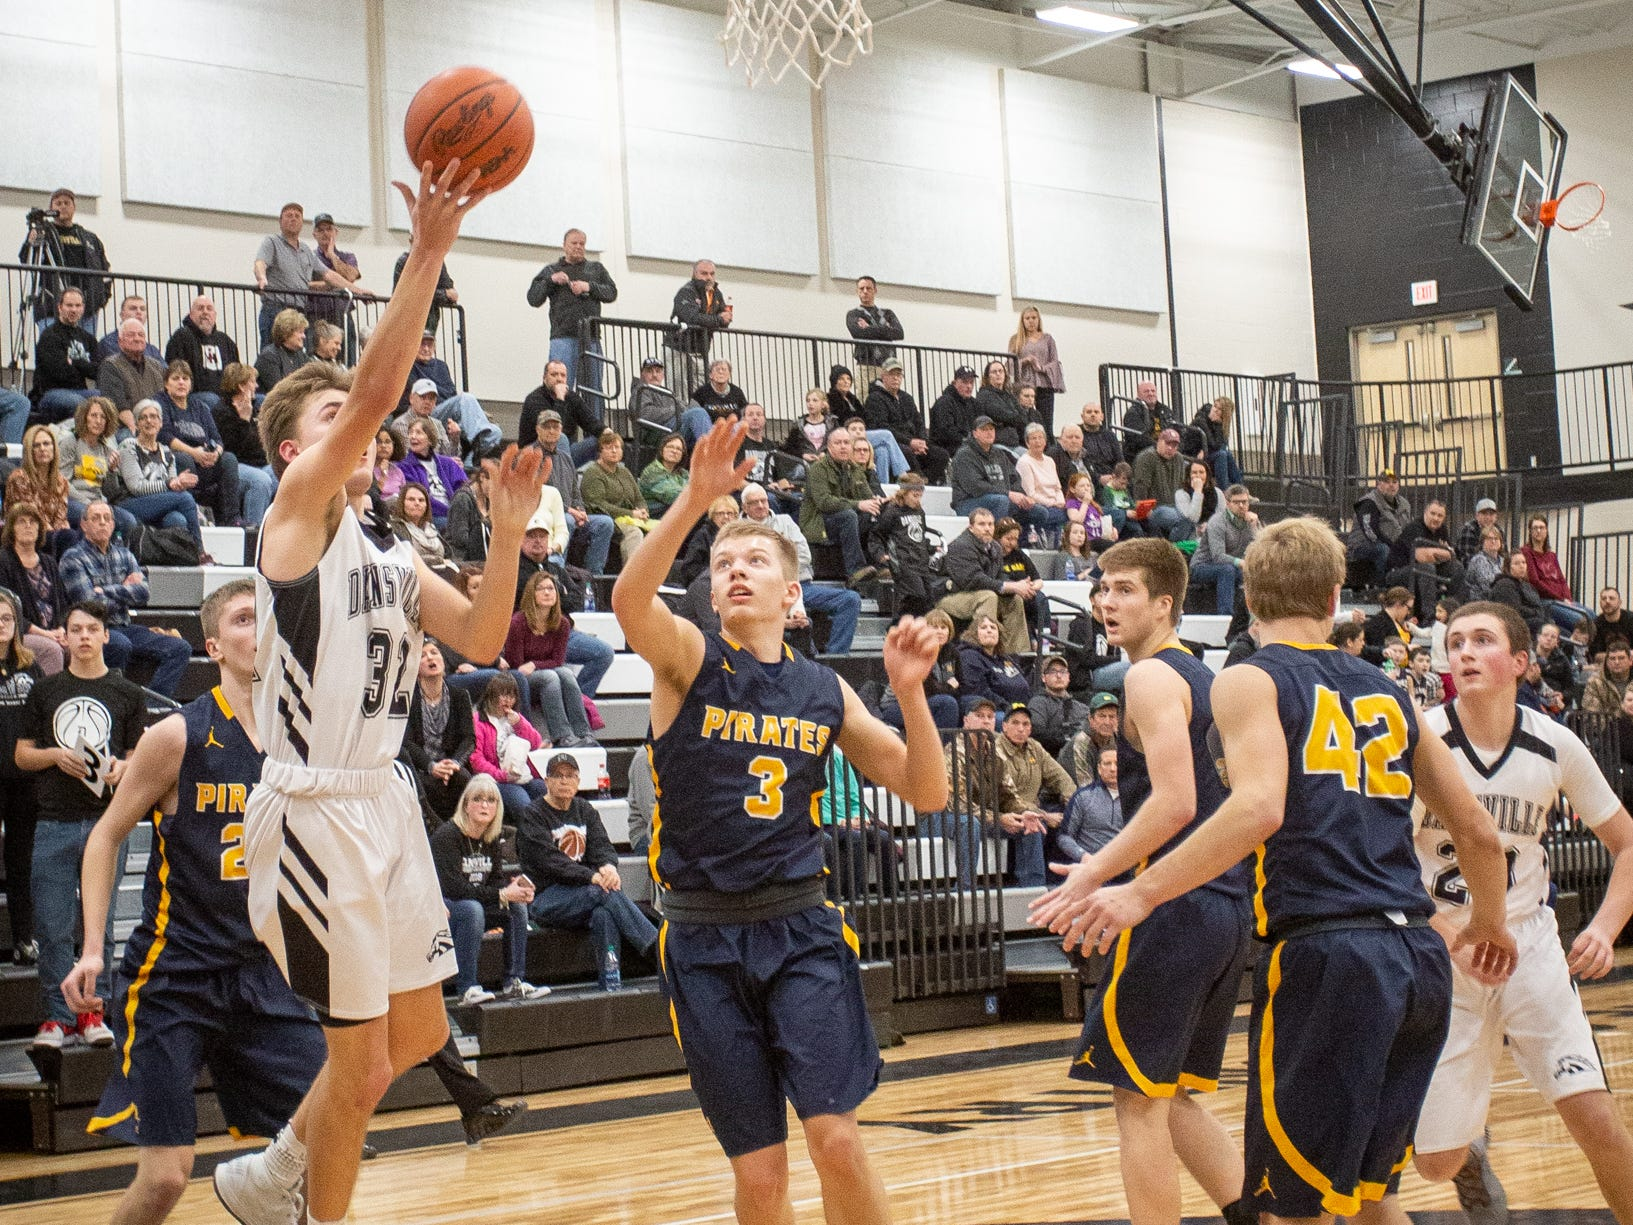 Dansville senior Devin Patrick puts up a shot during a game against Pewamo-Westphalia in January.